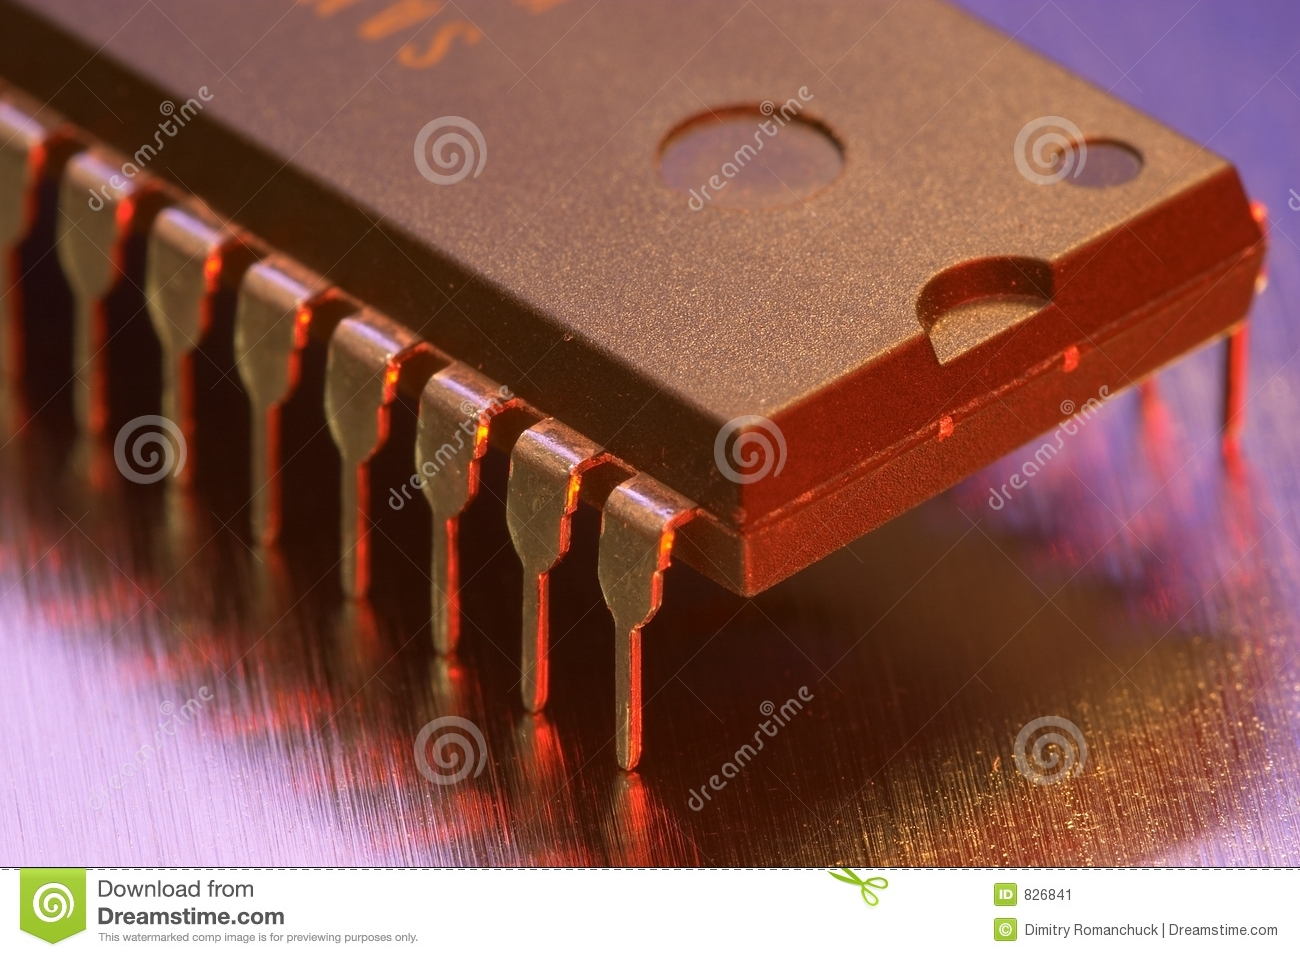 Macro view of a computer chip